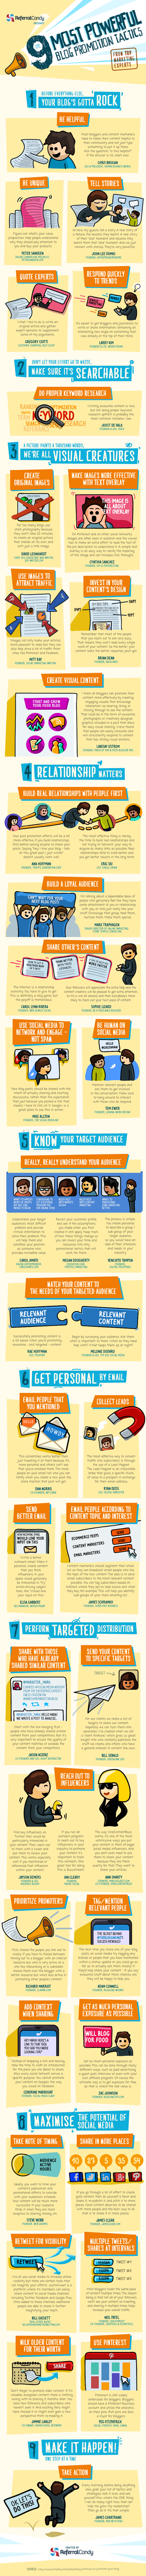 blog-promotion-tactics-infographic